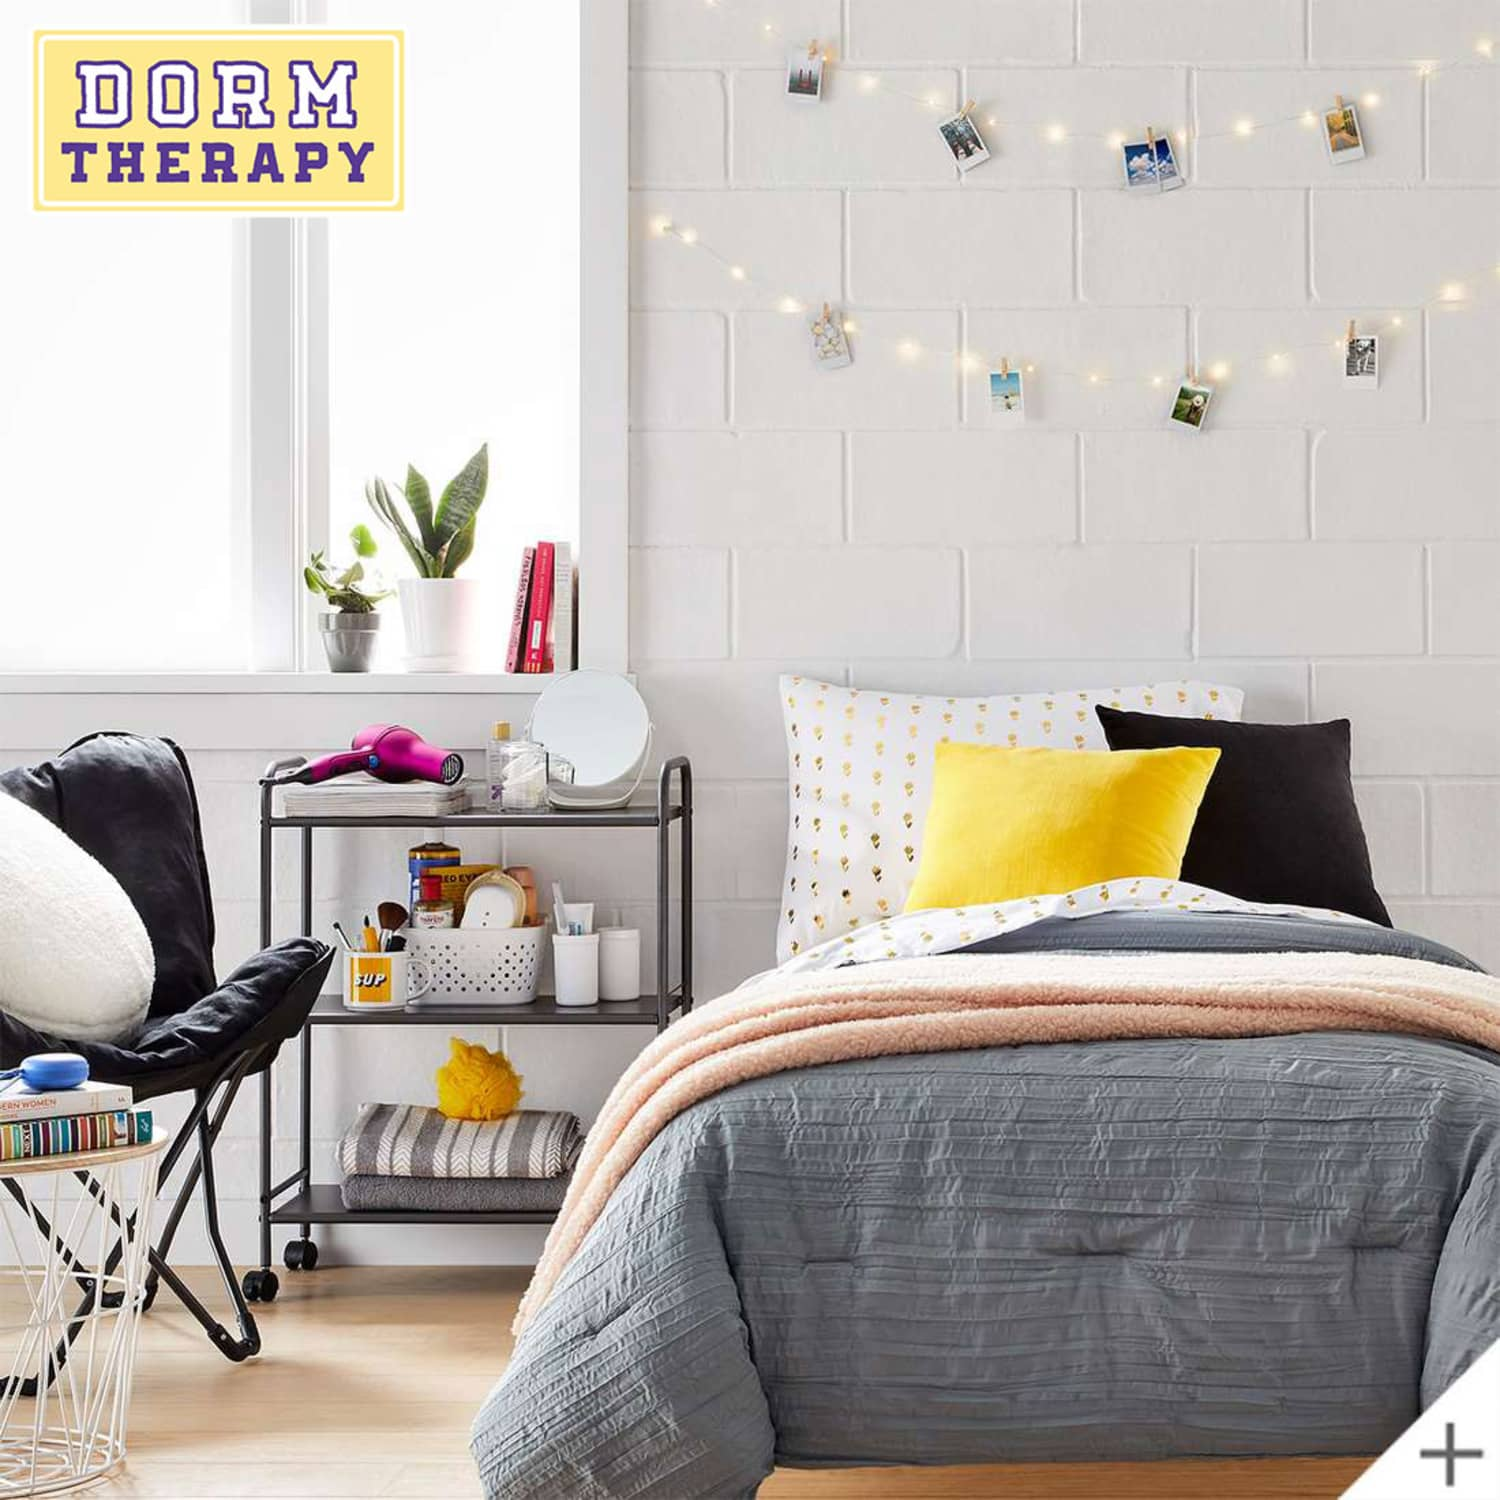 10 Tips for Organizing Your Tiny Dorm Room